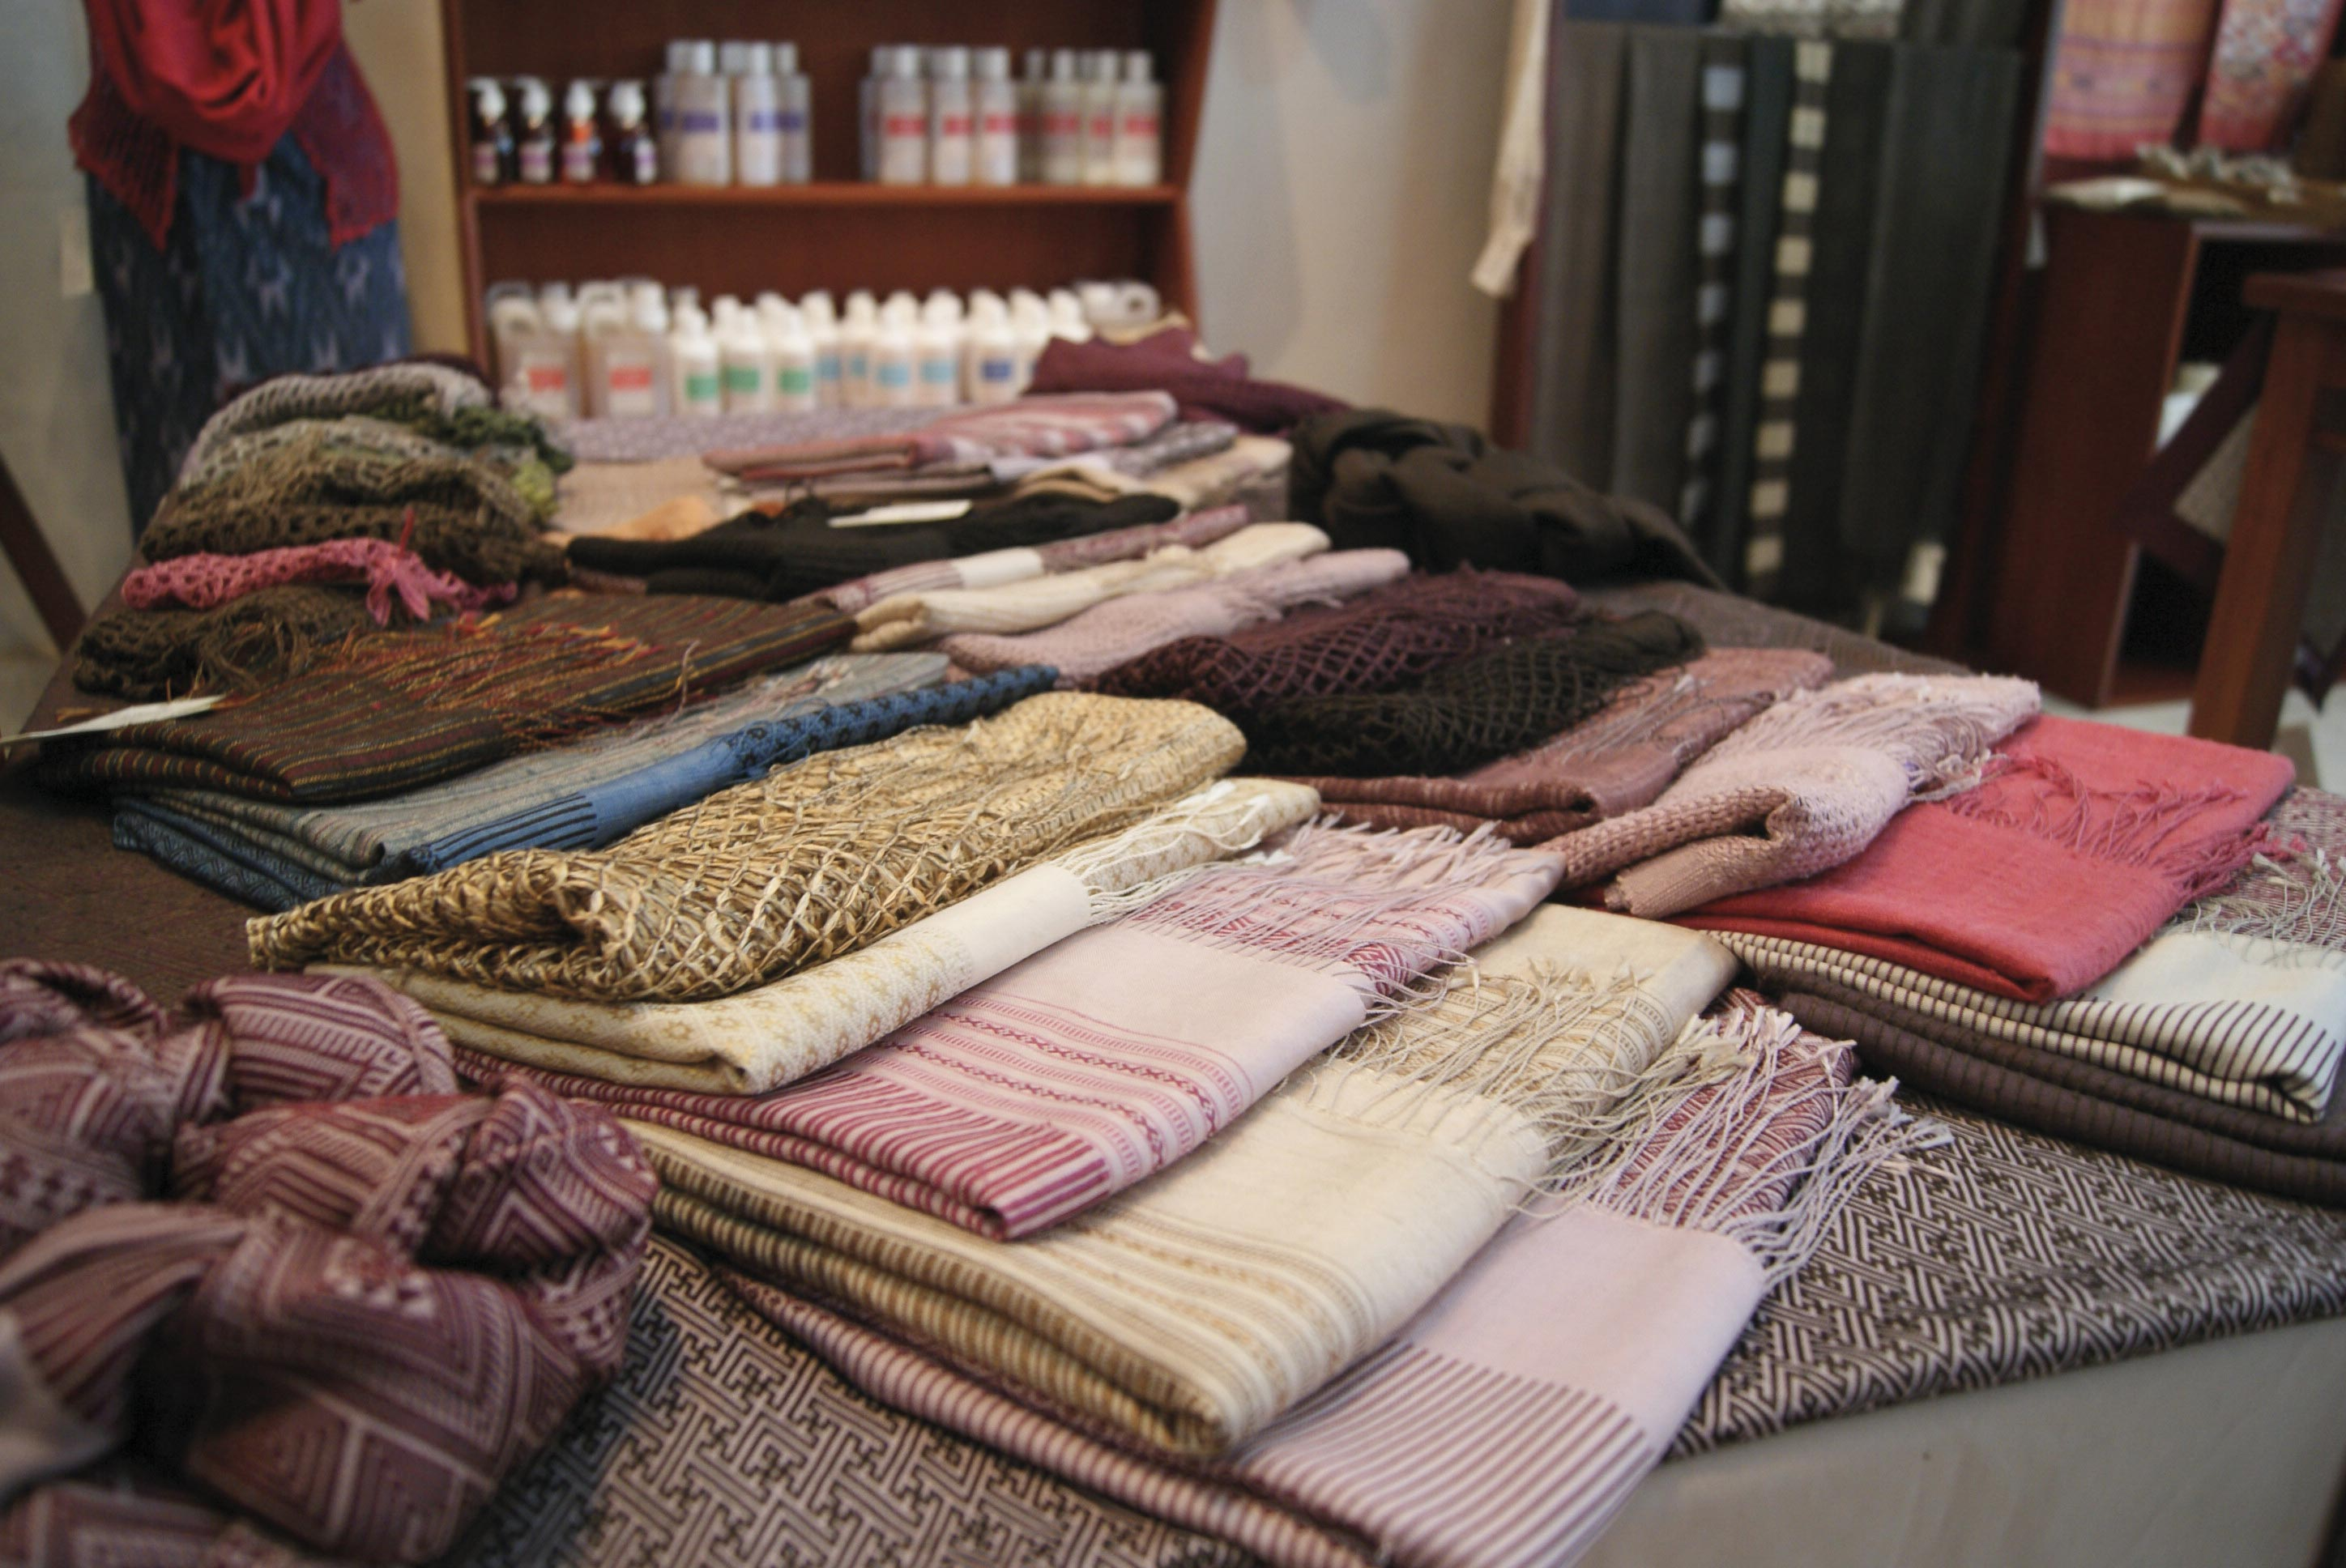 Ethically produced textiles at Mulberries.